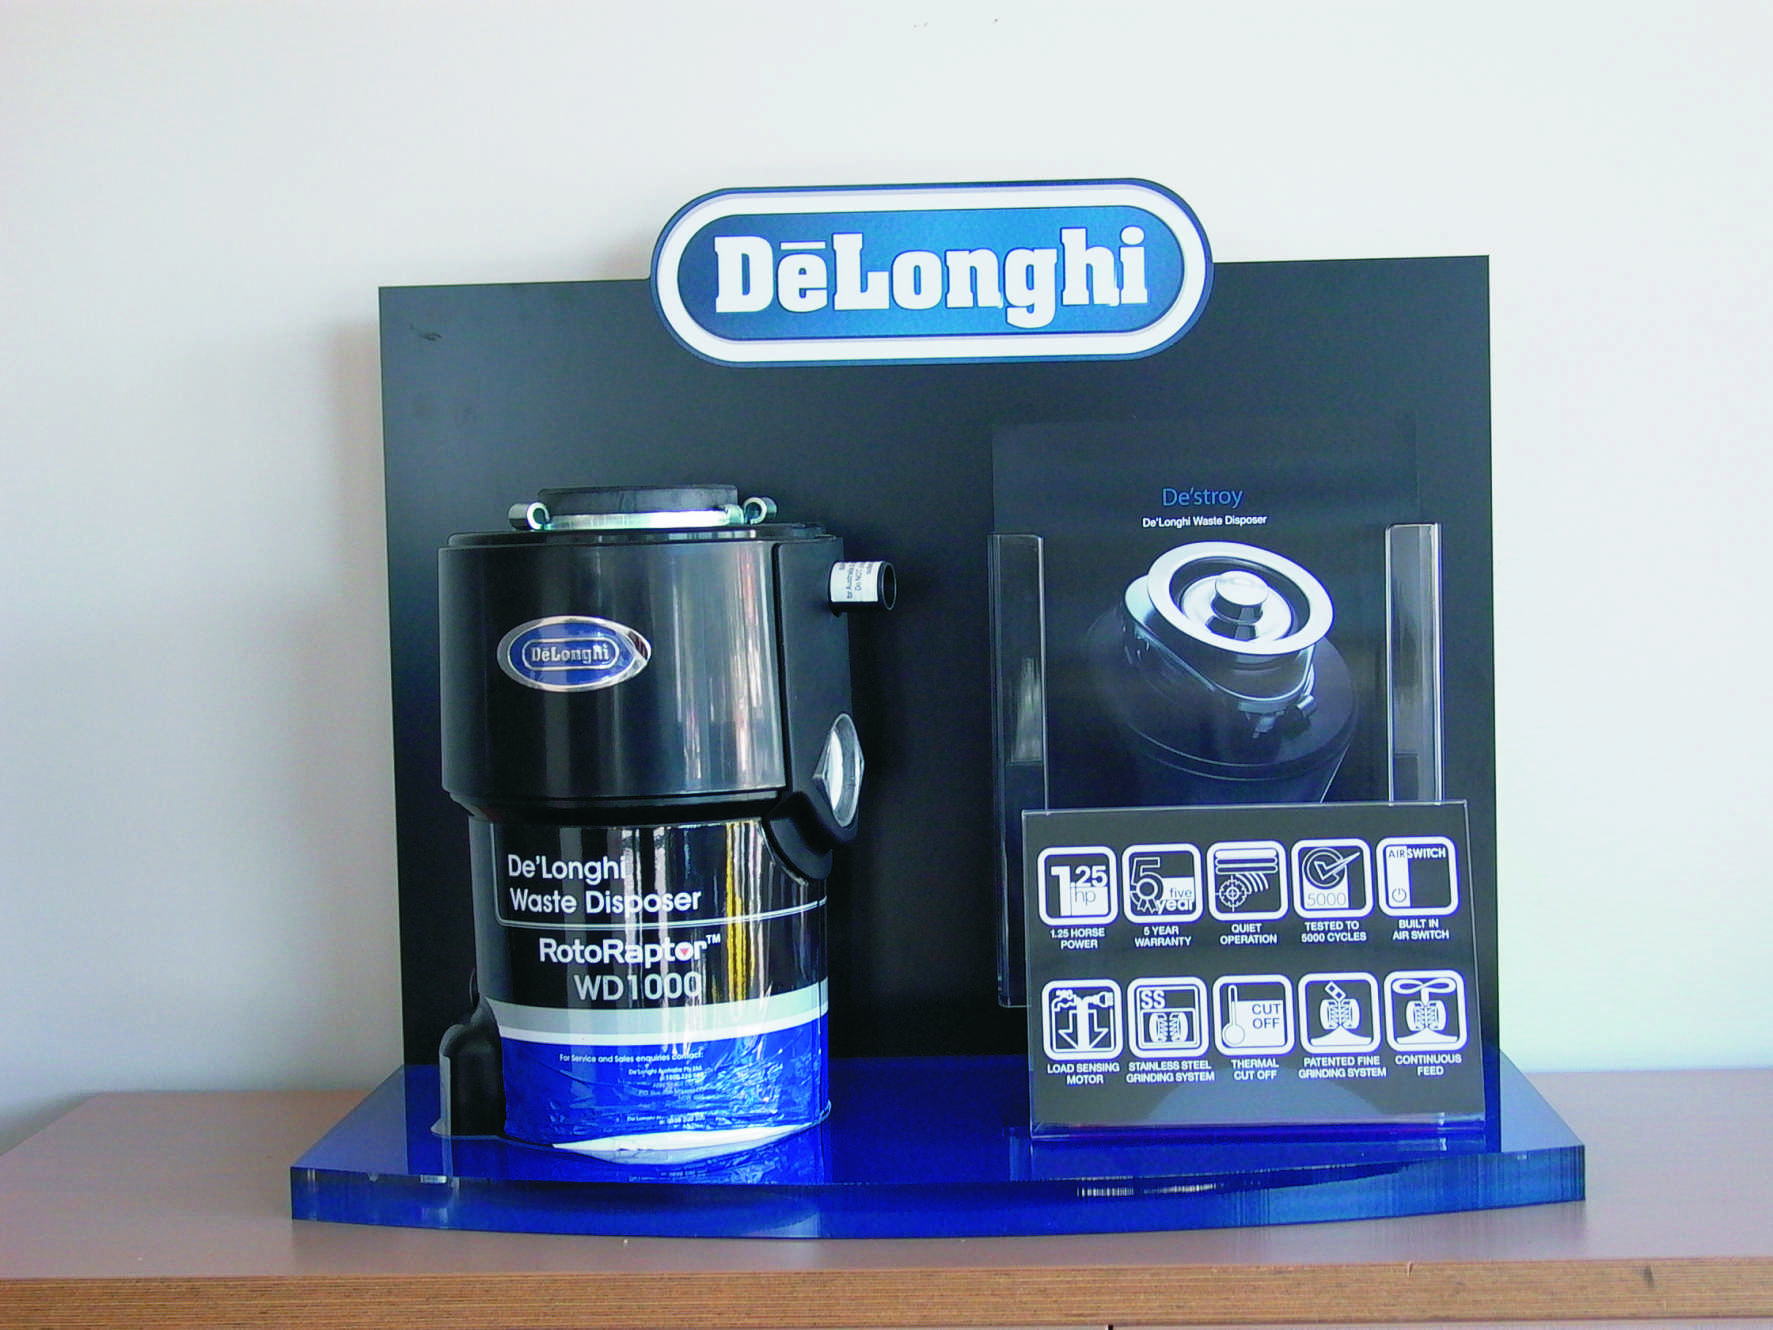 Delonghi waste disposal